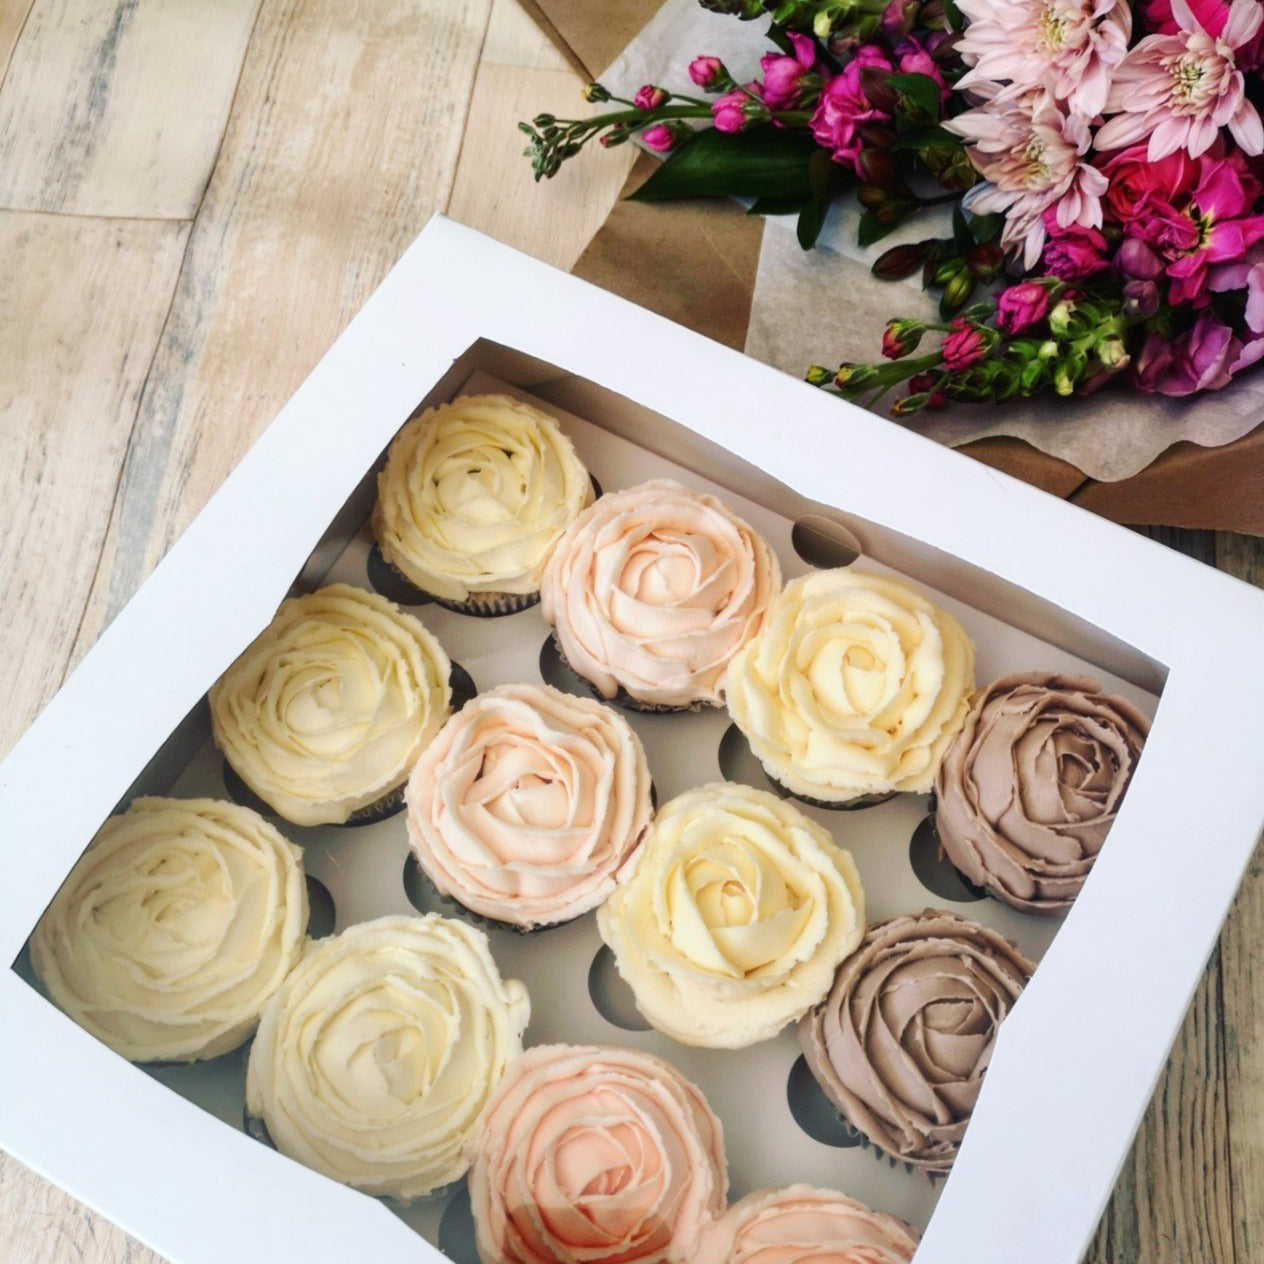 Deluxe Floral & Wildflour Cakery Cupcakes Combo